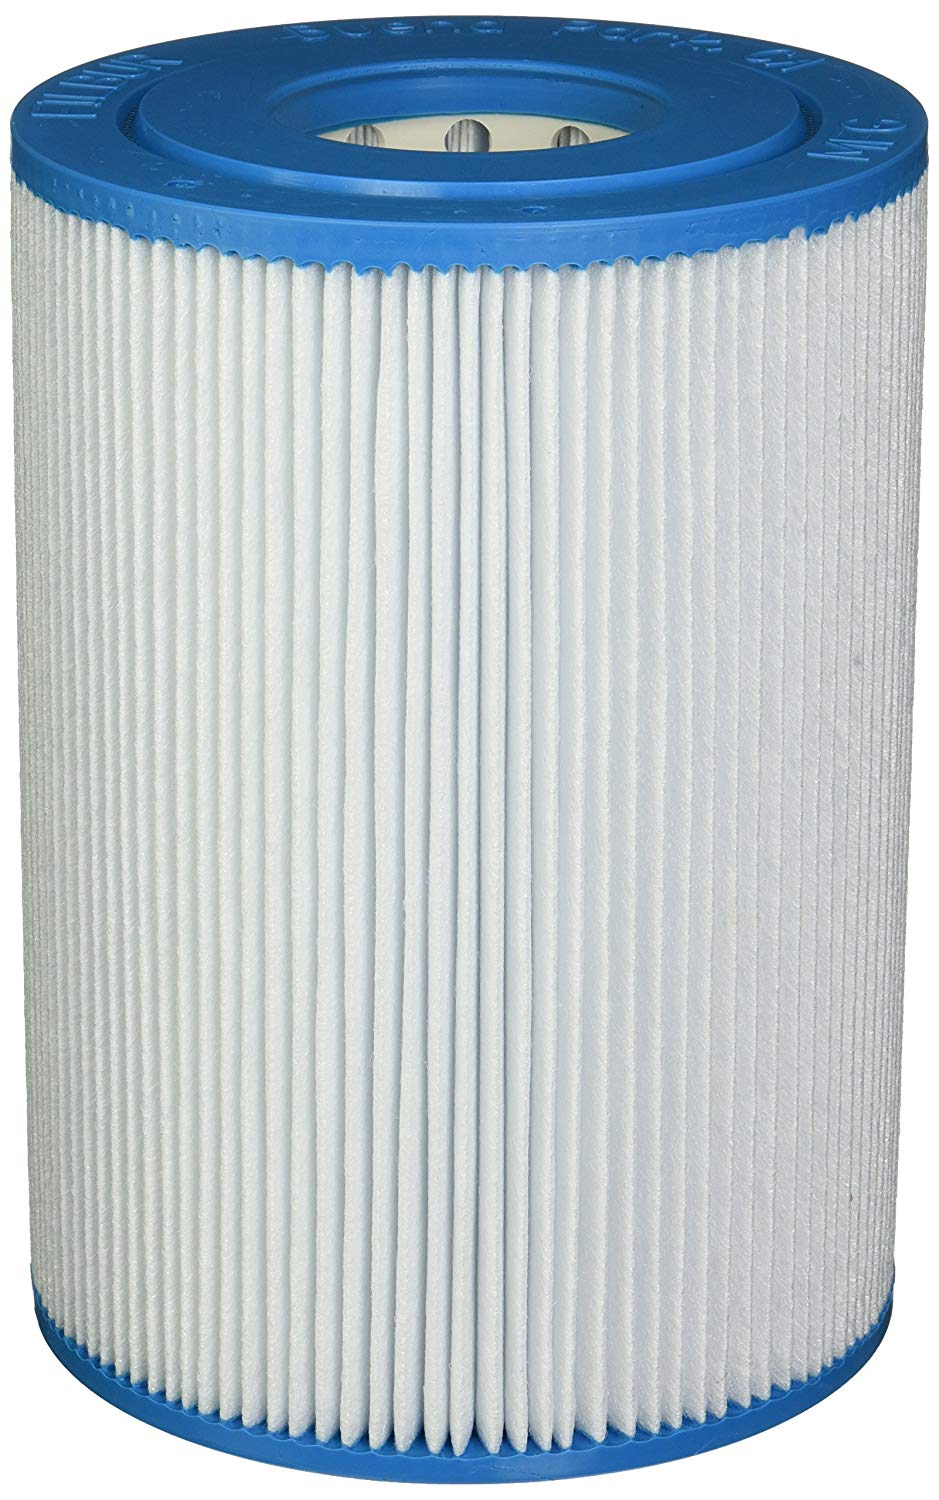 Filbur FC-0610 Antimicrobial Replacement Filter Cartridge for Select Pool and Spa Filter